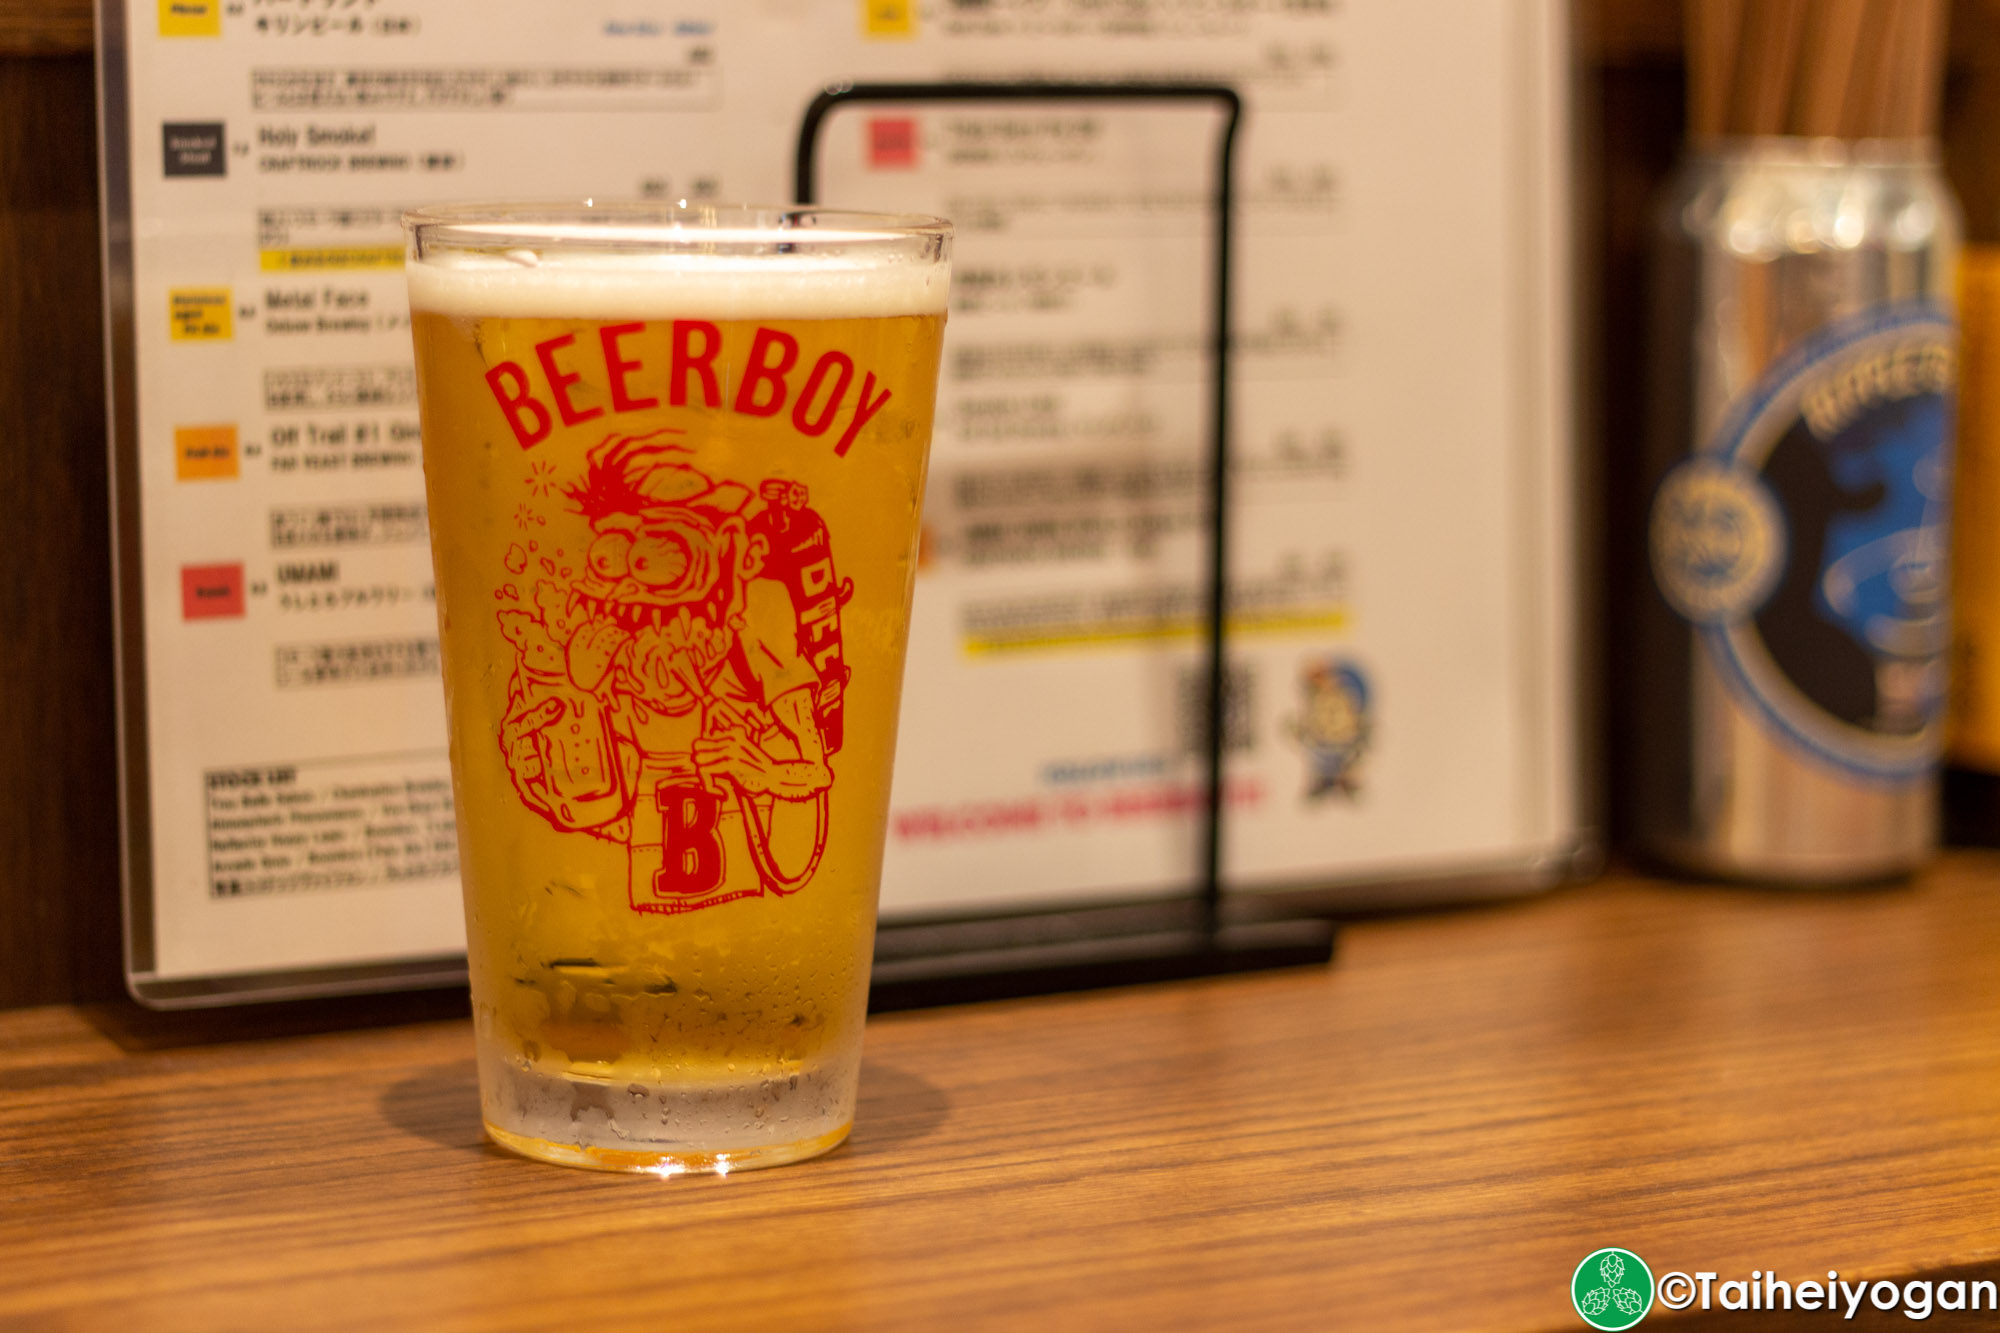 立ち飲みビールボーイ・Standing Bar Beer Boy (渋谷パルコ店・Shibuya Parco) - Menu - Craft Beer